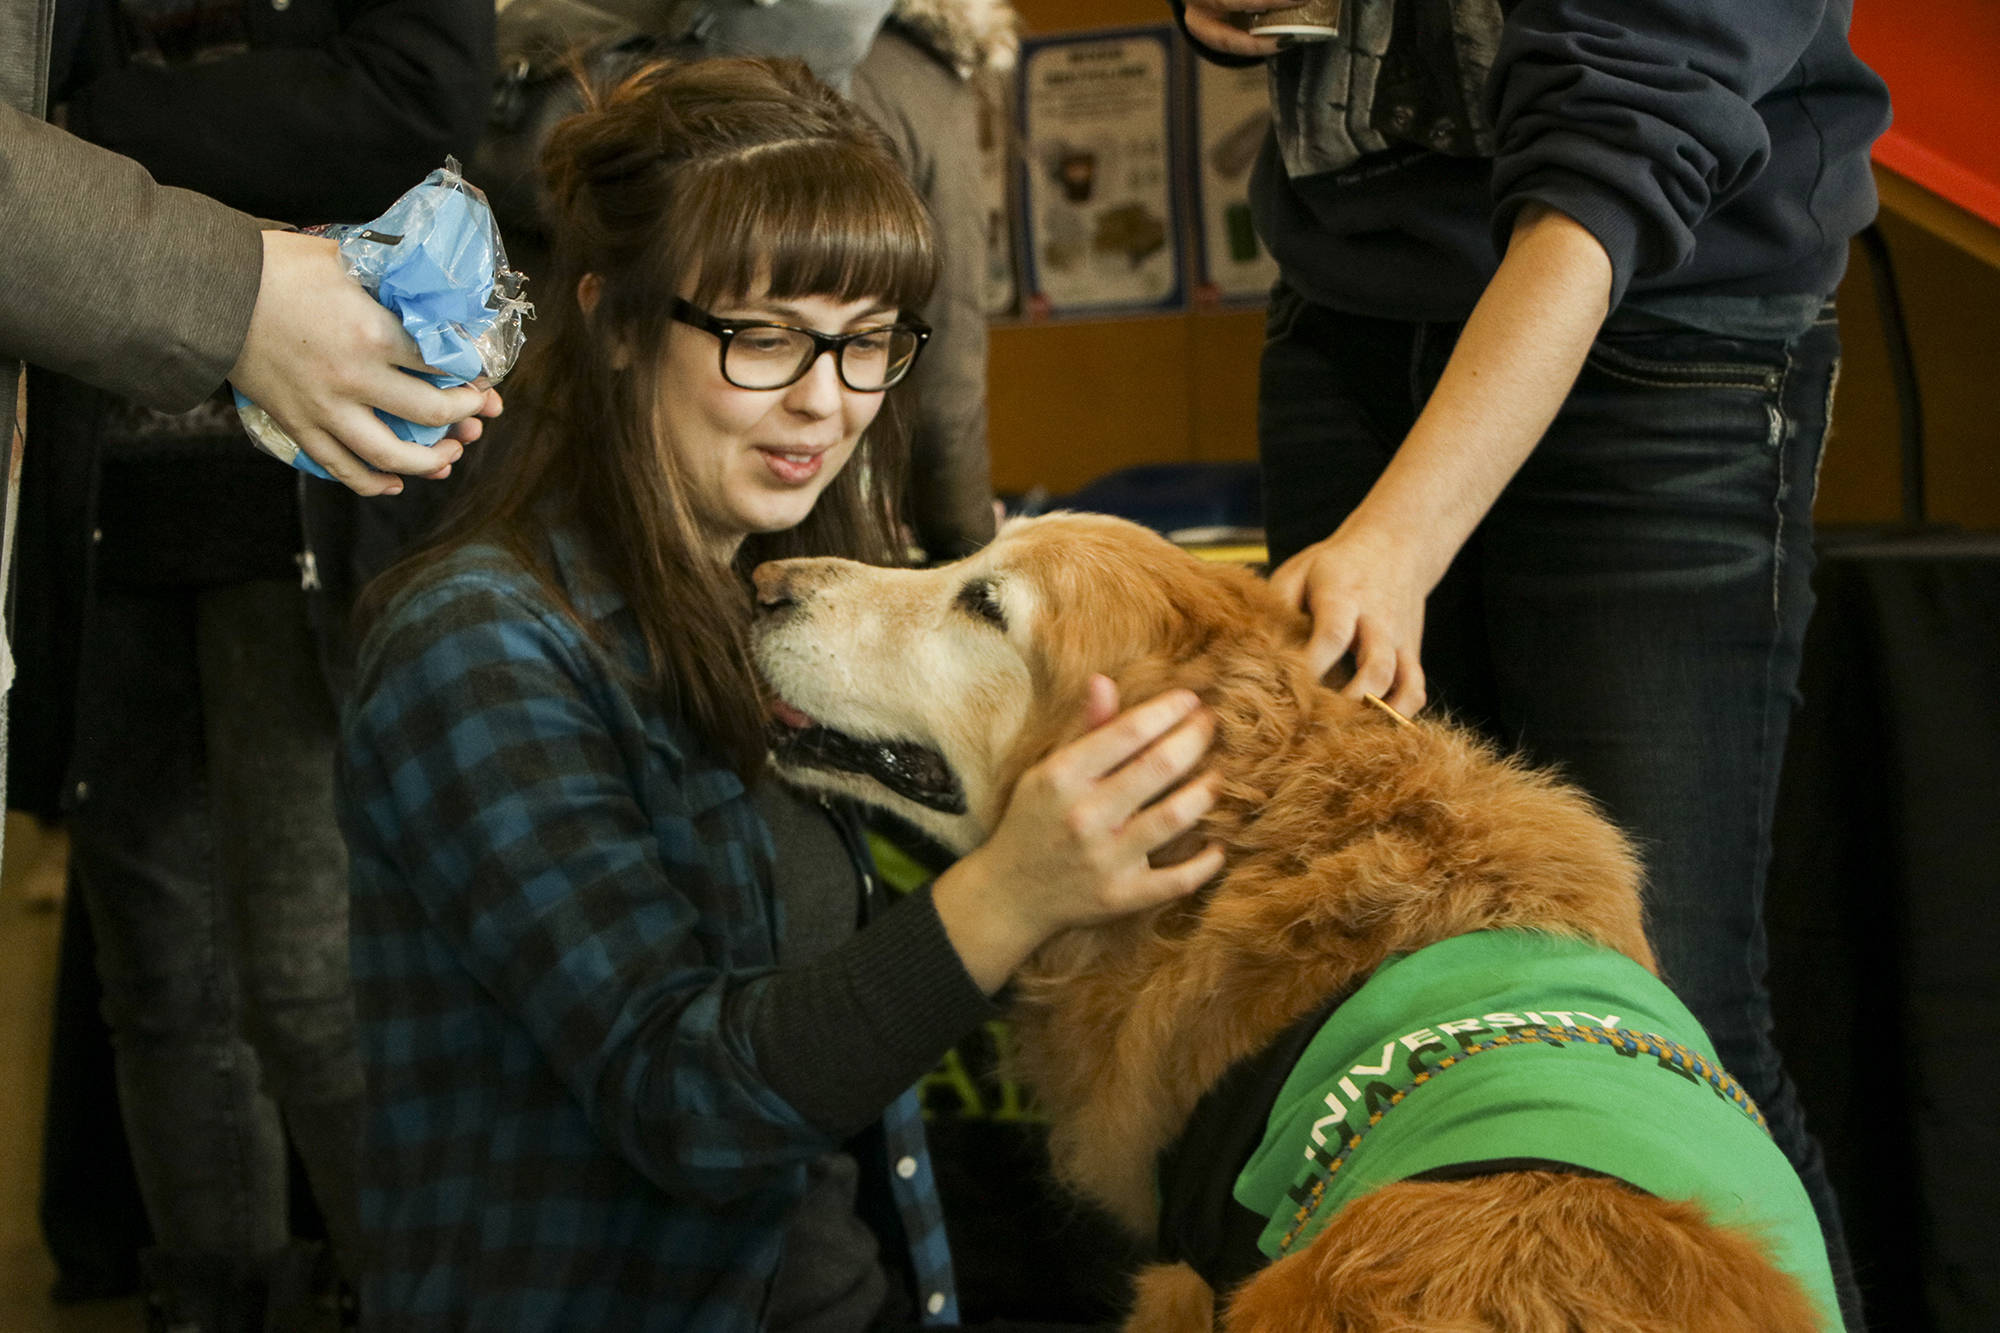 Mac was a pup-ular dog at the University of the Fraser Valley sports building Tuesday afternoon, where he celebrated his 15th birthday and his retirement as a therapy dog at the University of the Fraser Valley. Dustin Godfrey/Abbotsford News